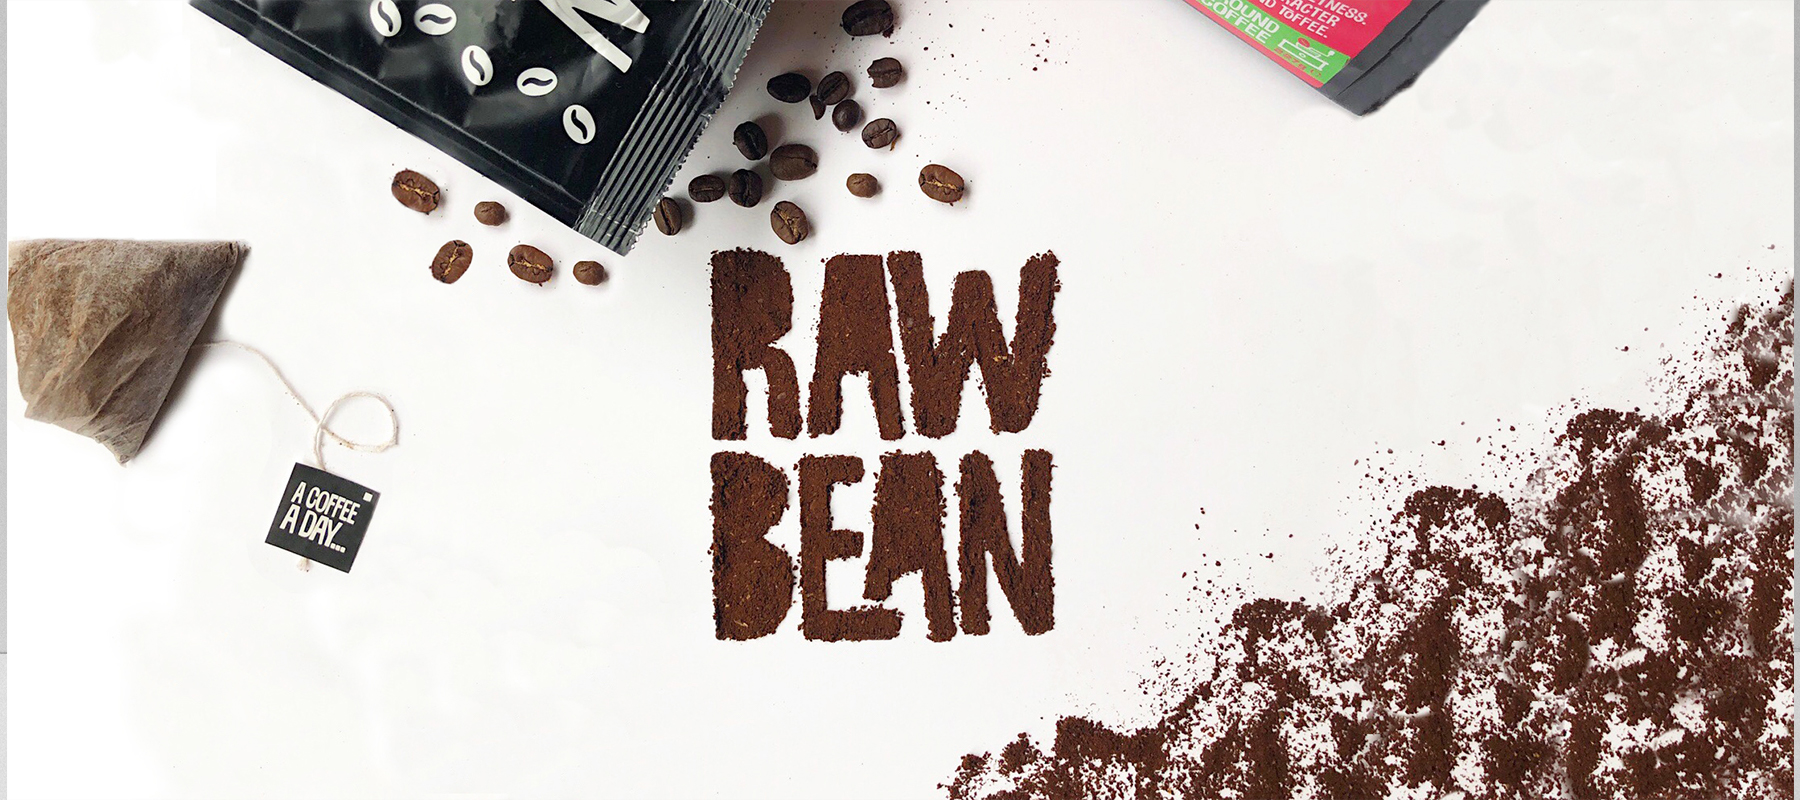 The rawbean logo made out of coffee